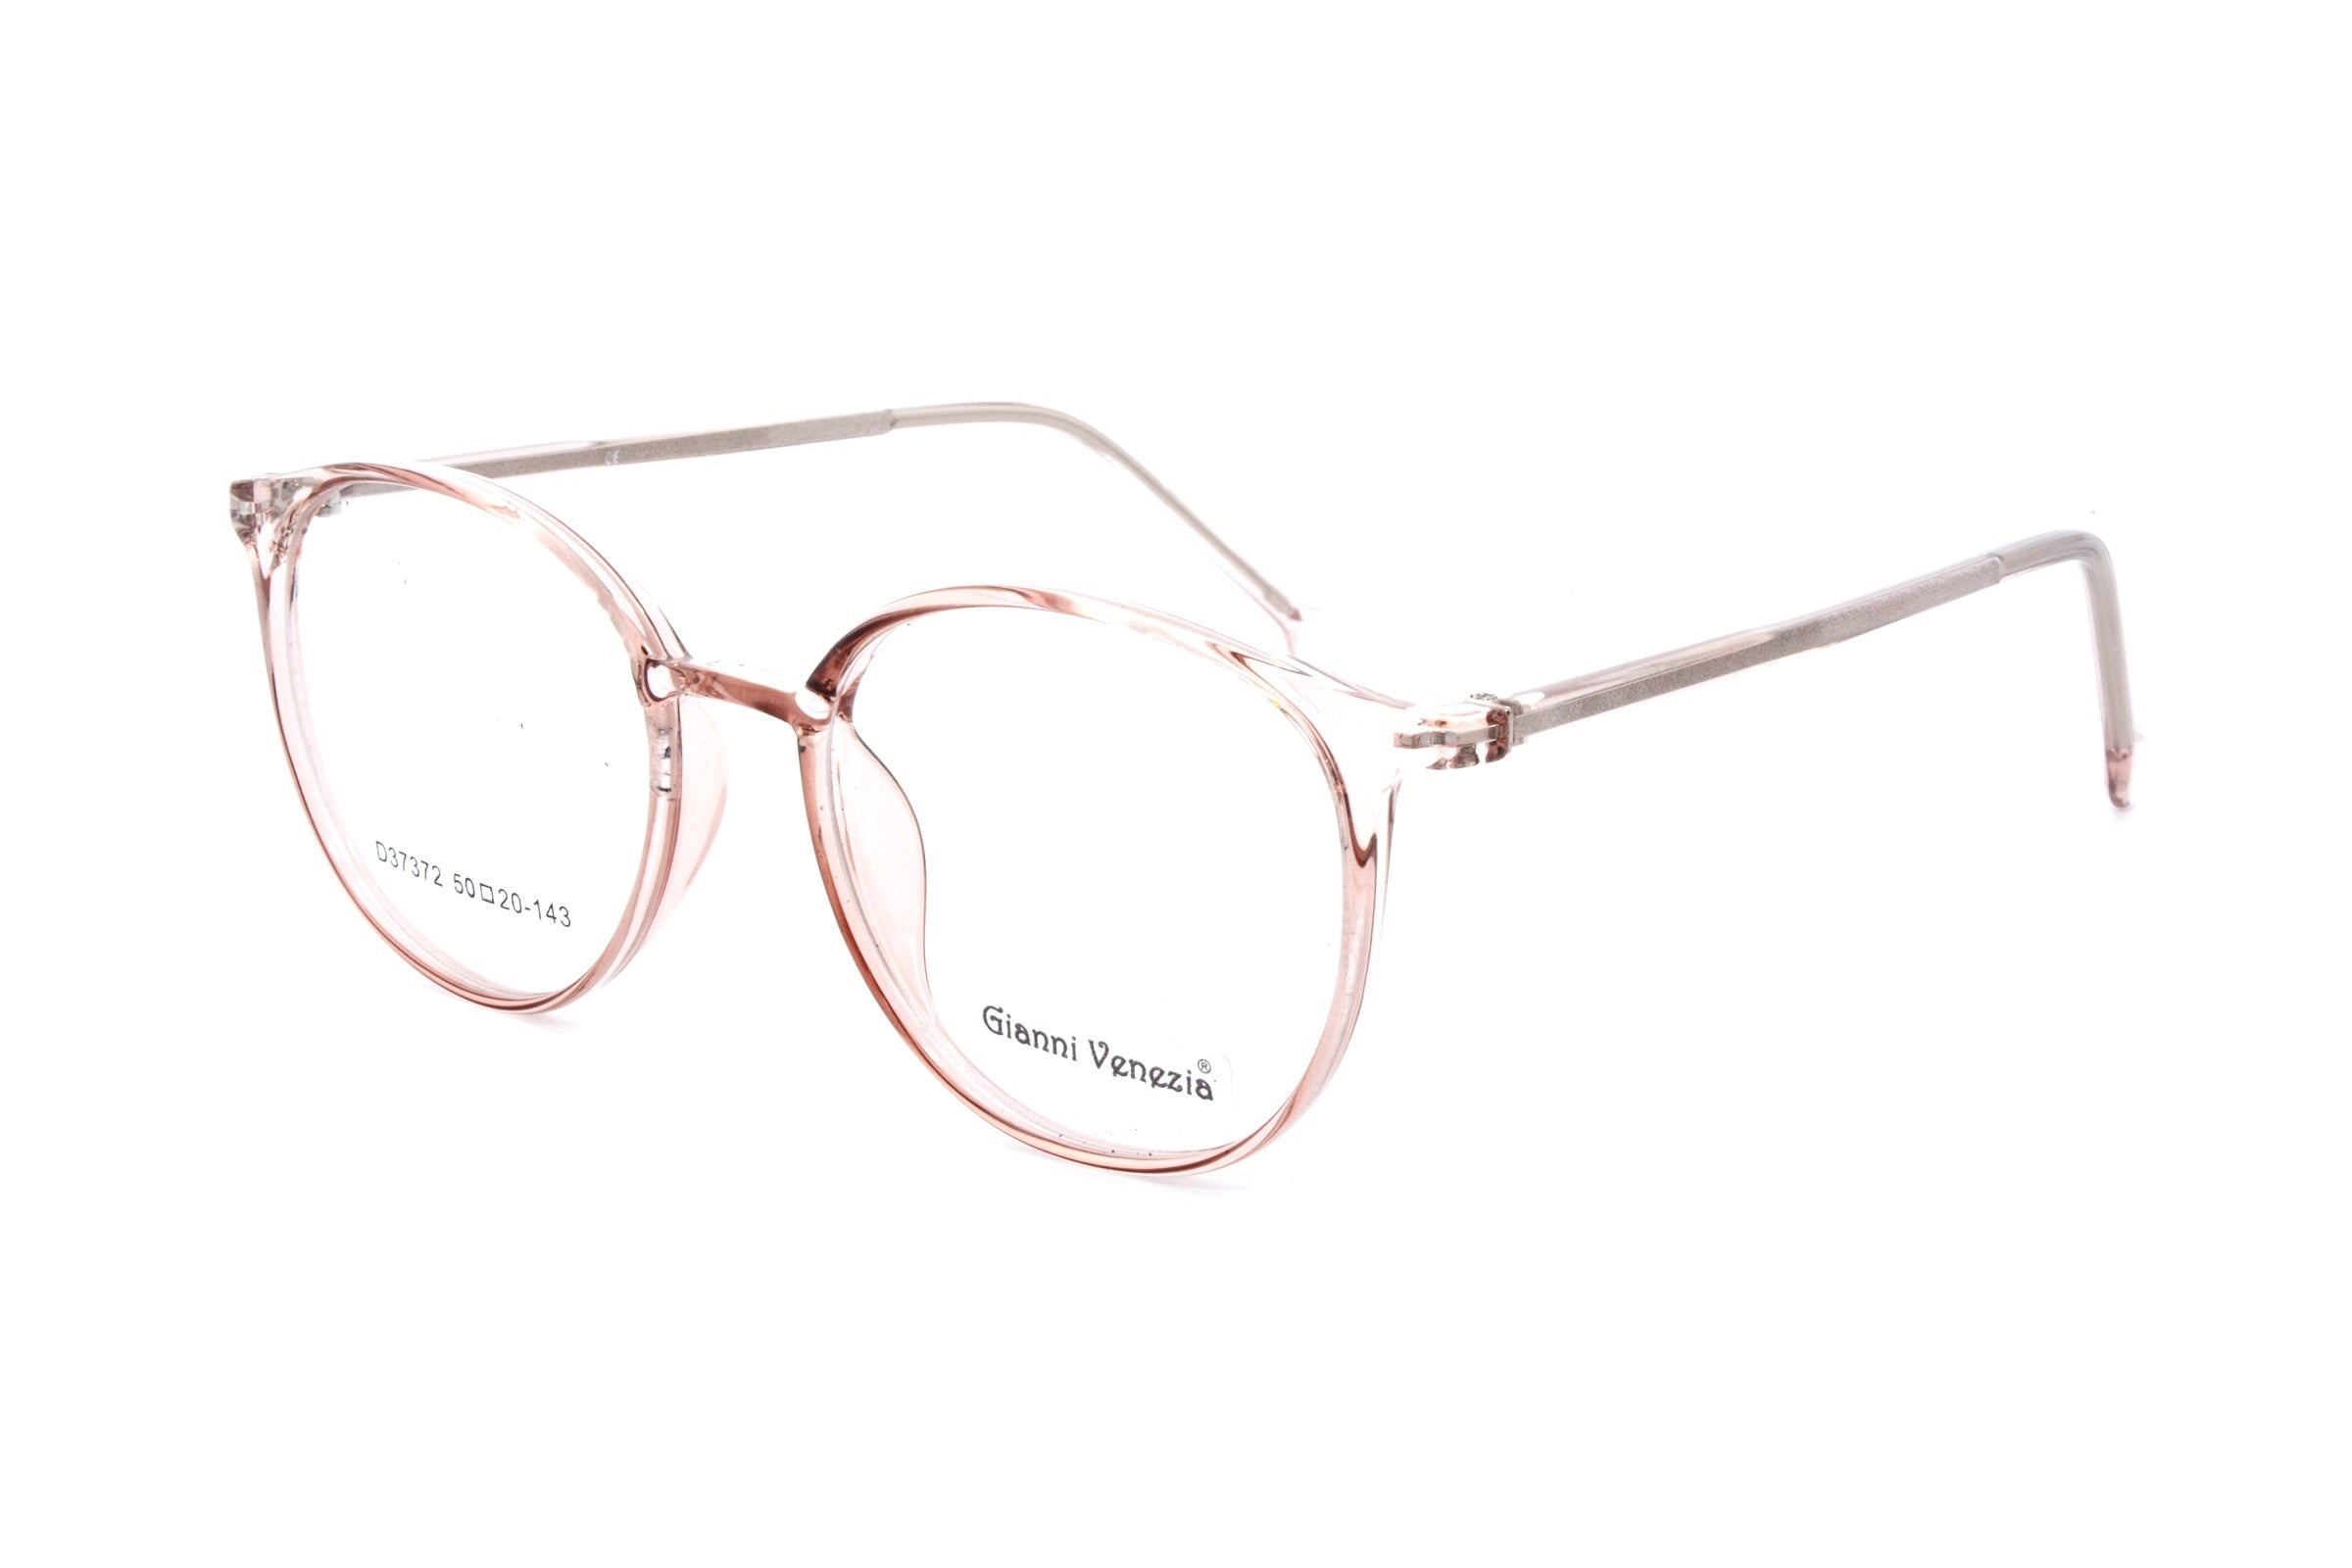 Gianni Vennezia eyewear 37372, C3 - Optics Trading